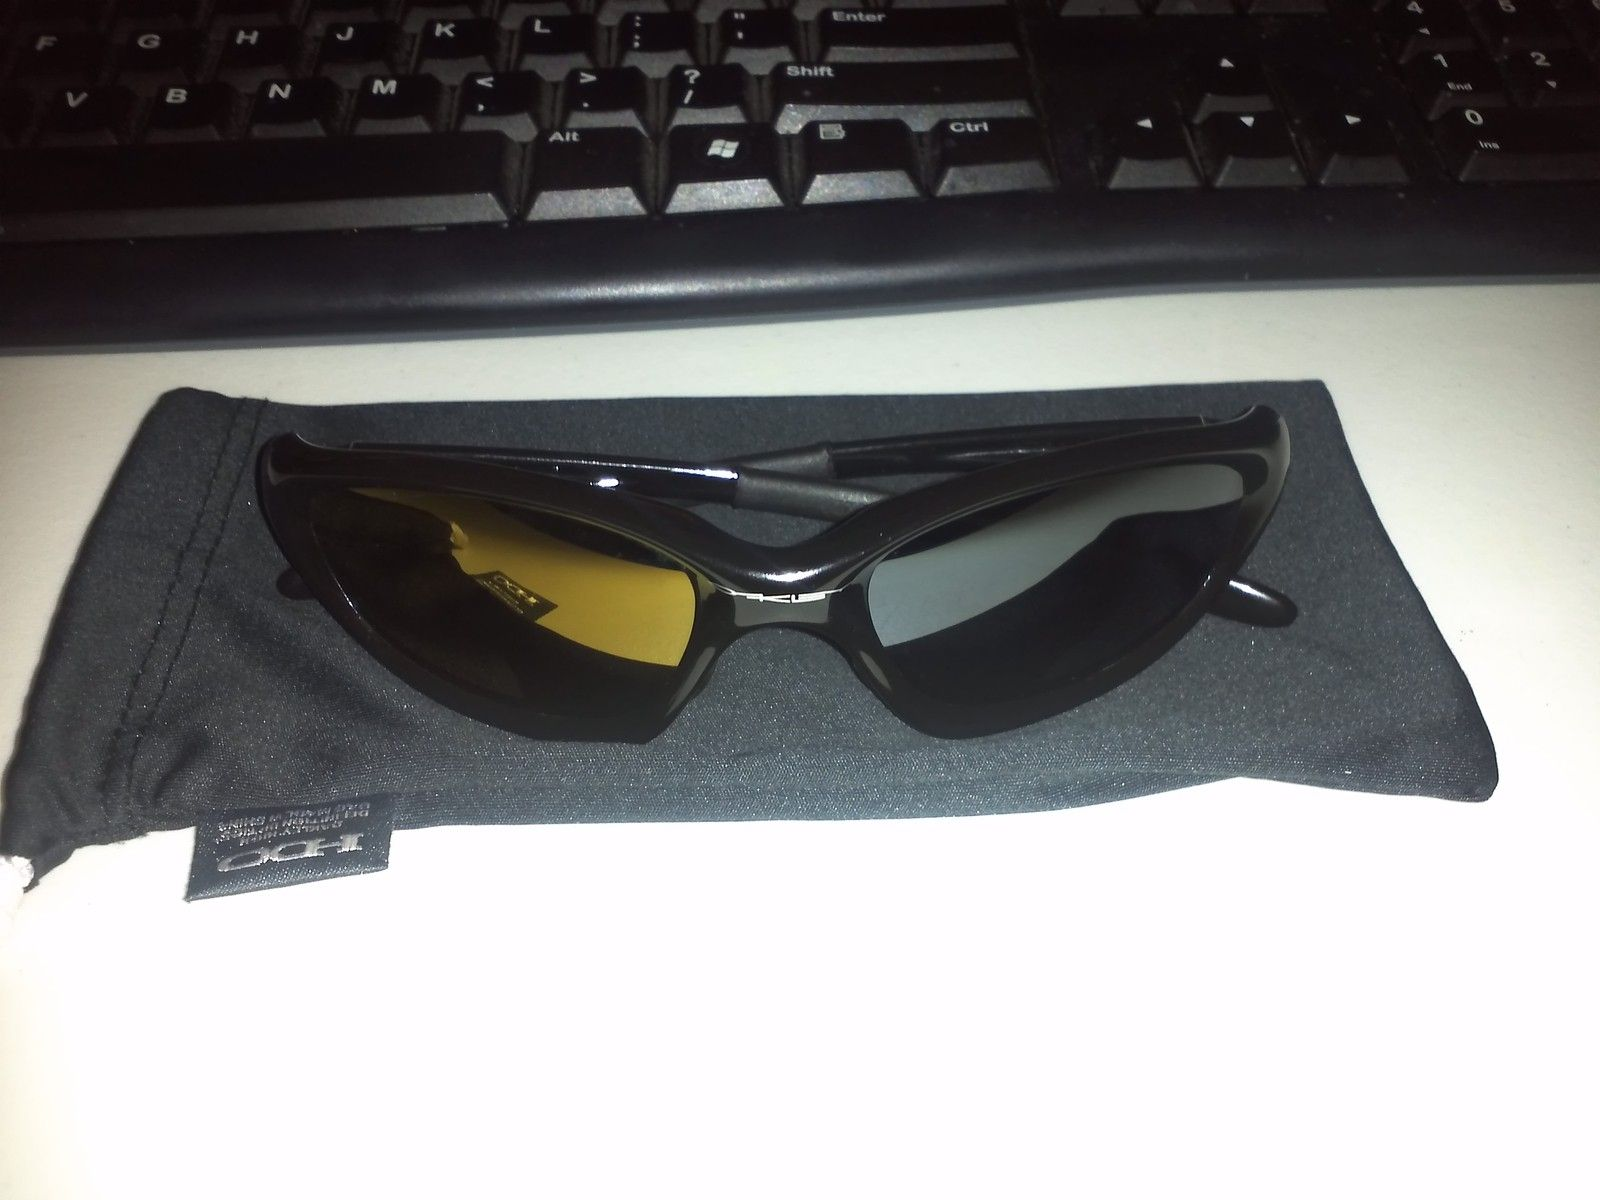 EyeKon Lenses For Oakley XX (Vintage) Purchase And Review (Final Update 12-31-12) - oneeach1.jpg